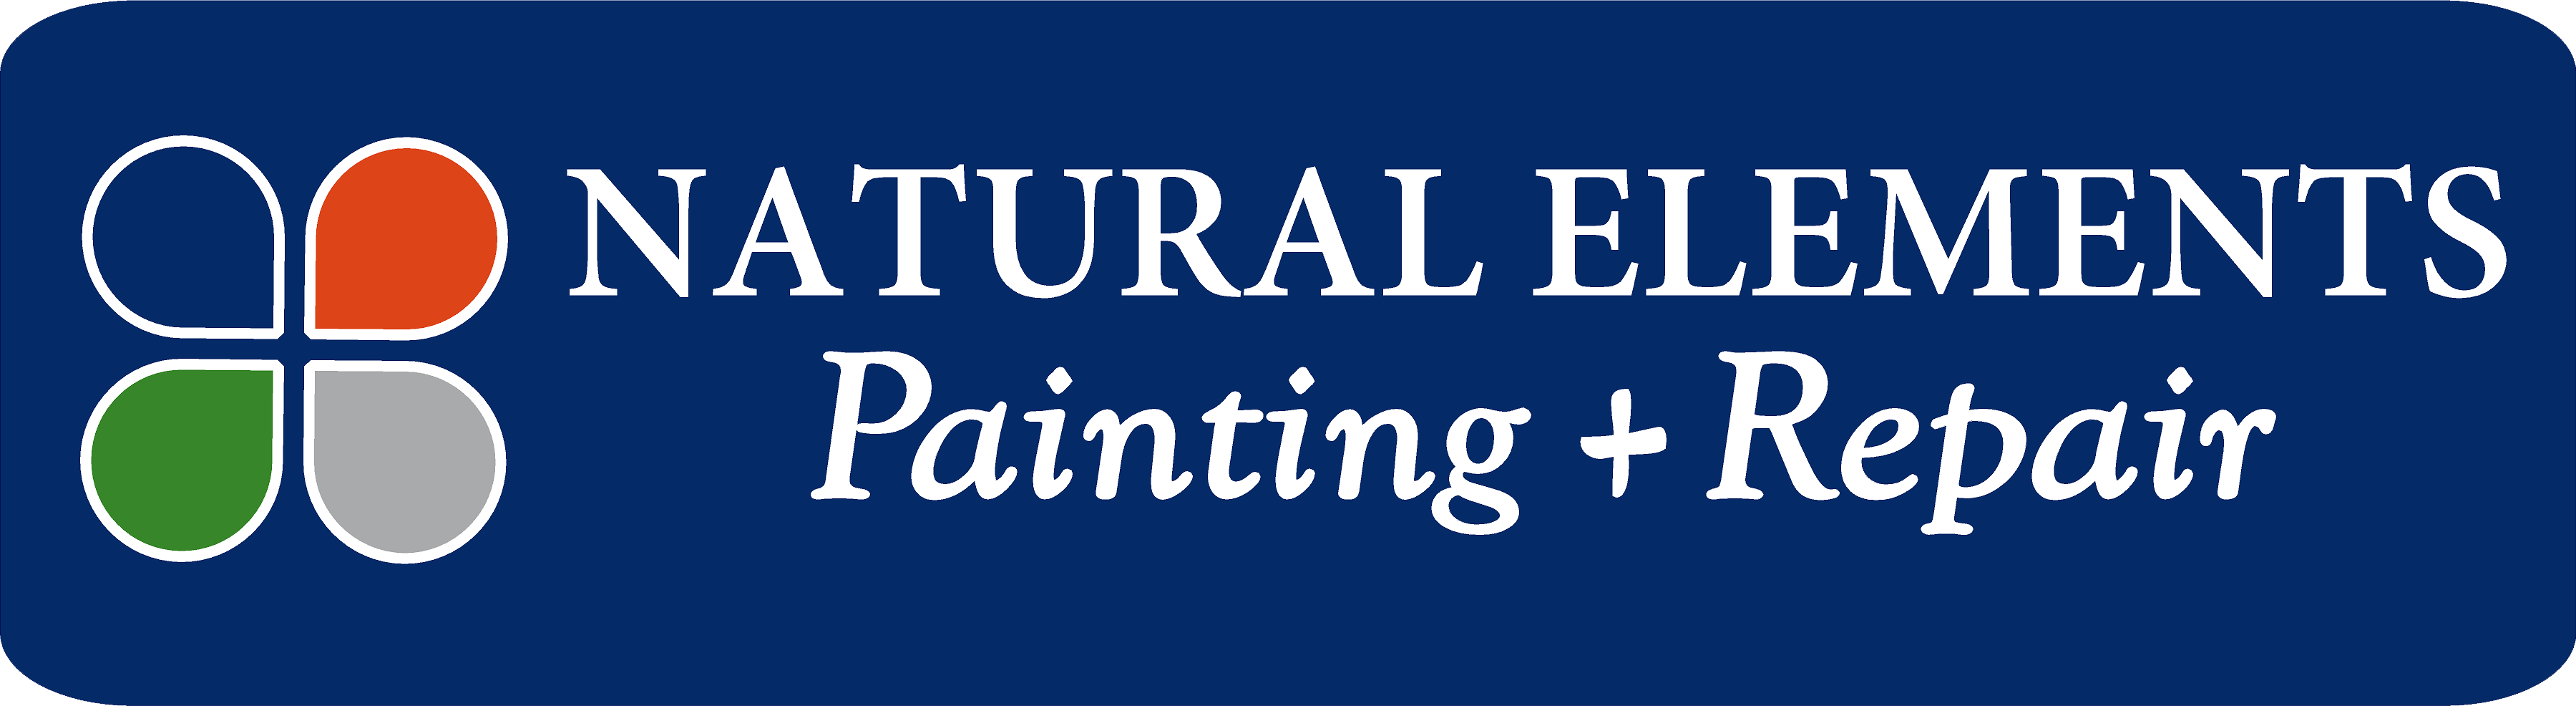 Natural Elements Painting & Repair, LLC – Under Construction (In Use)